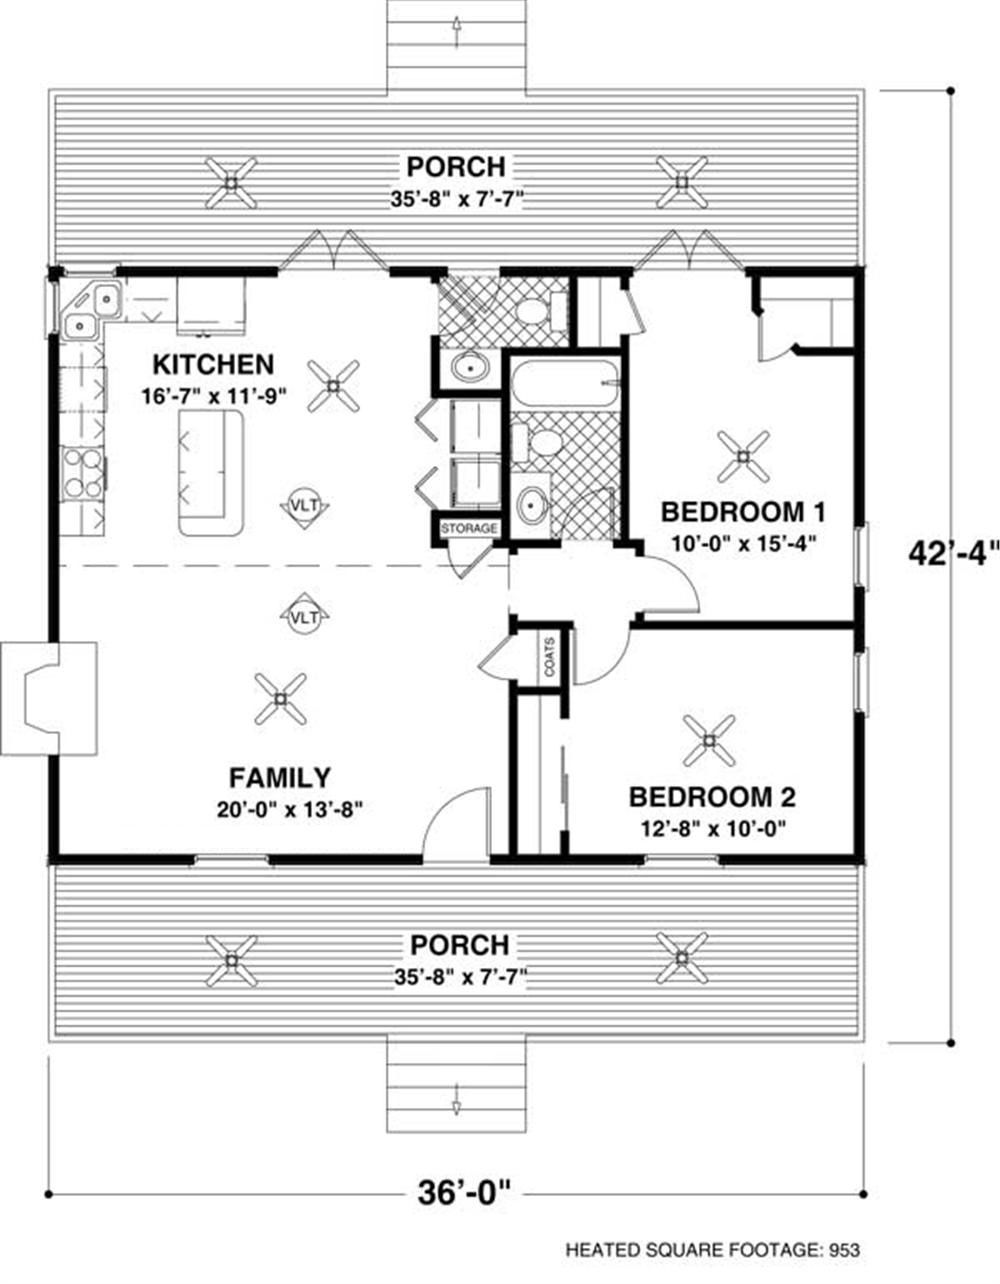 This compact two-bedroom Ranch Home Plan is striking and ... on rent house plans, rural house plans, kitchen house plans, tv house plans, flats house plans, bathroom house plans, single house plans, house house plans, studio house plans, florida villa house plans, utility house plans, lounge house plans, apartment house plans, bedroom house plans, garage house plans, townhouse house plans, internet house plans, living house plans, simple small house design plans, one bath house plans,